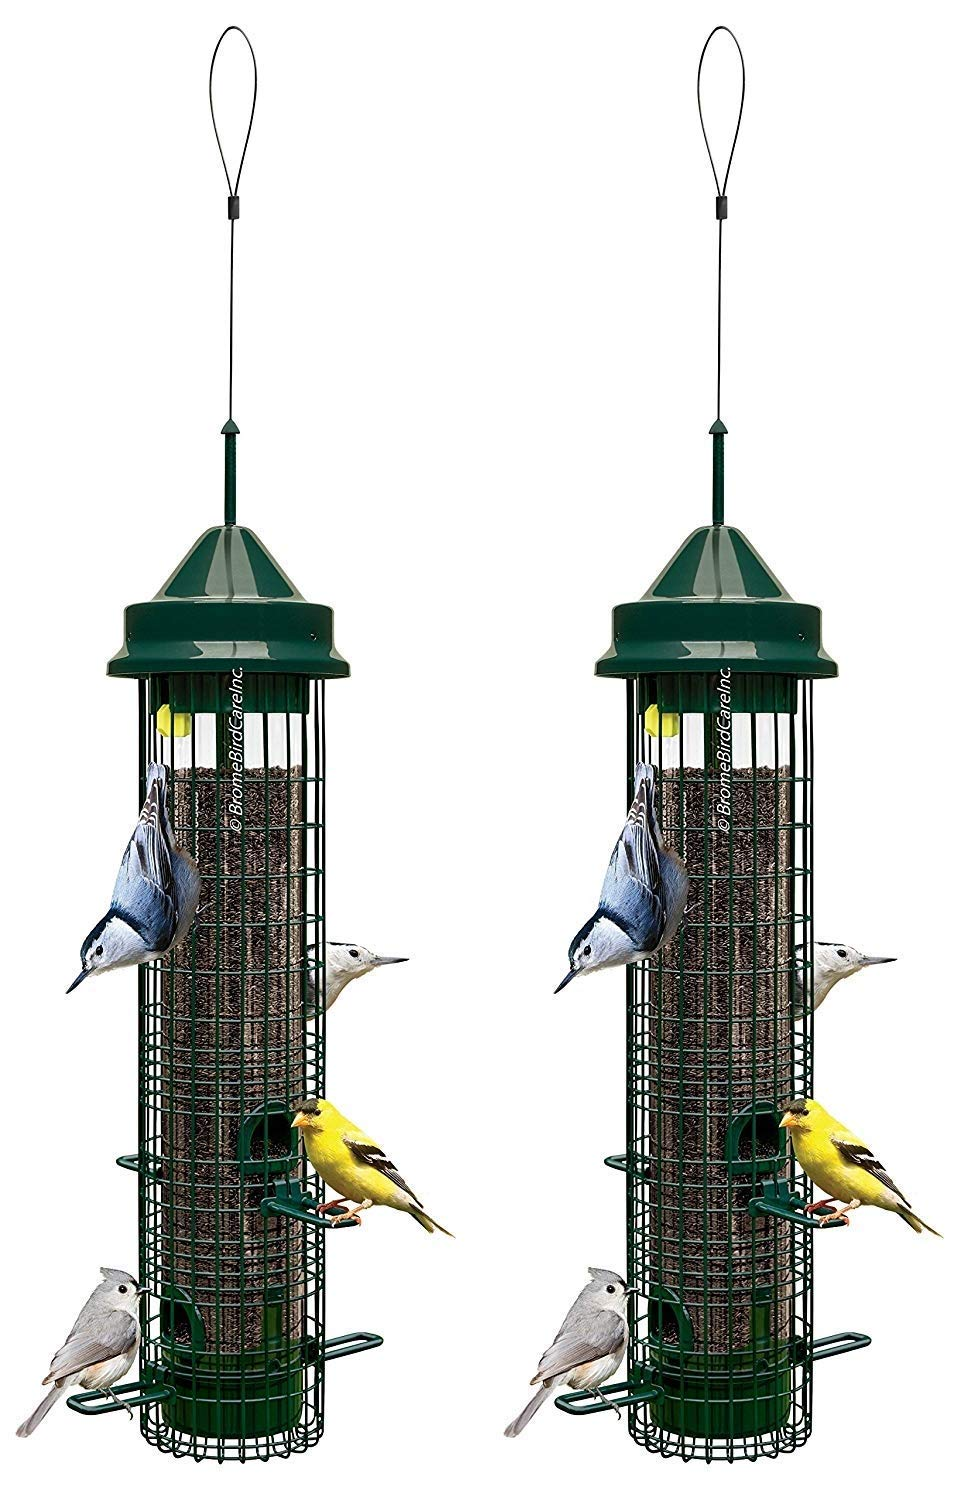 Squirrel Buster Classic 5.3''x5.3''x32'' (w/hanger) Wild Bird Feeder with 4 Feeding Ports, 2.4lb Seed Capacity, 2 Pack